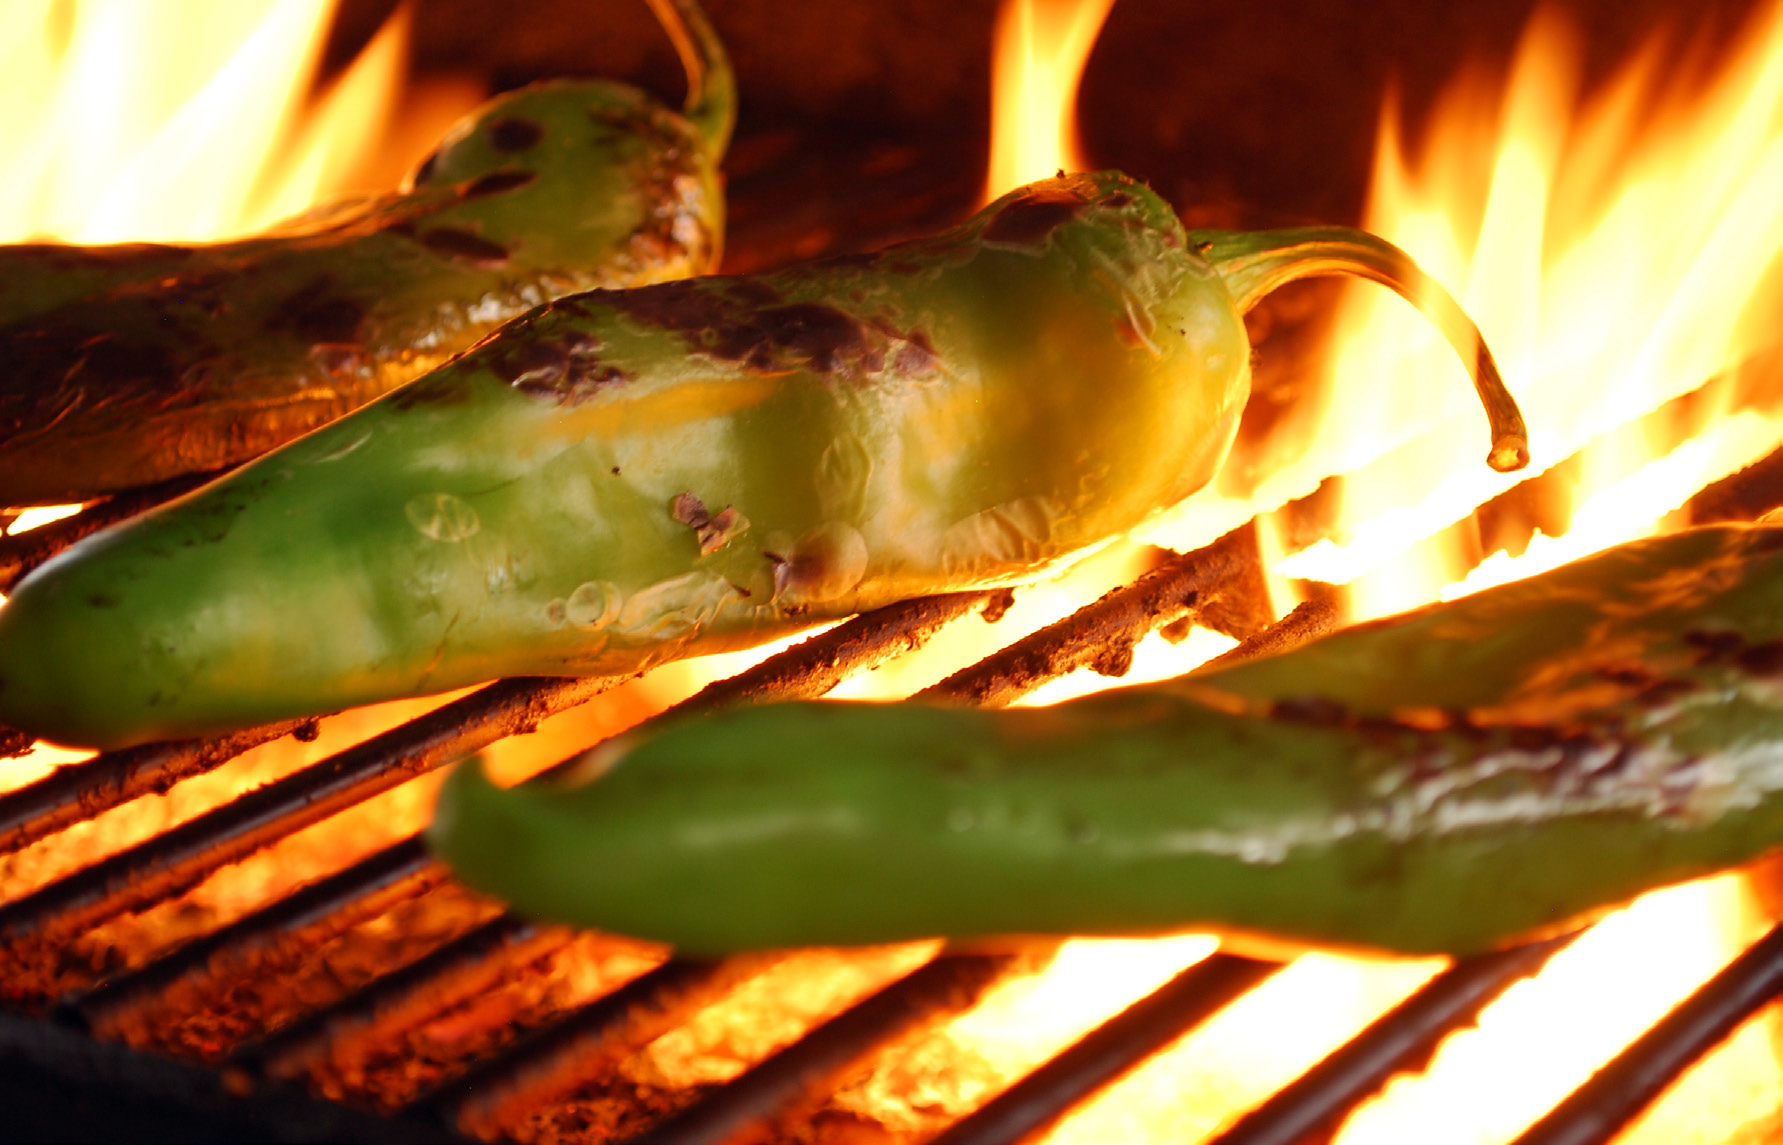 roasted chilis